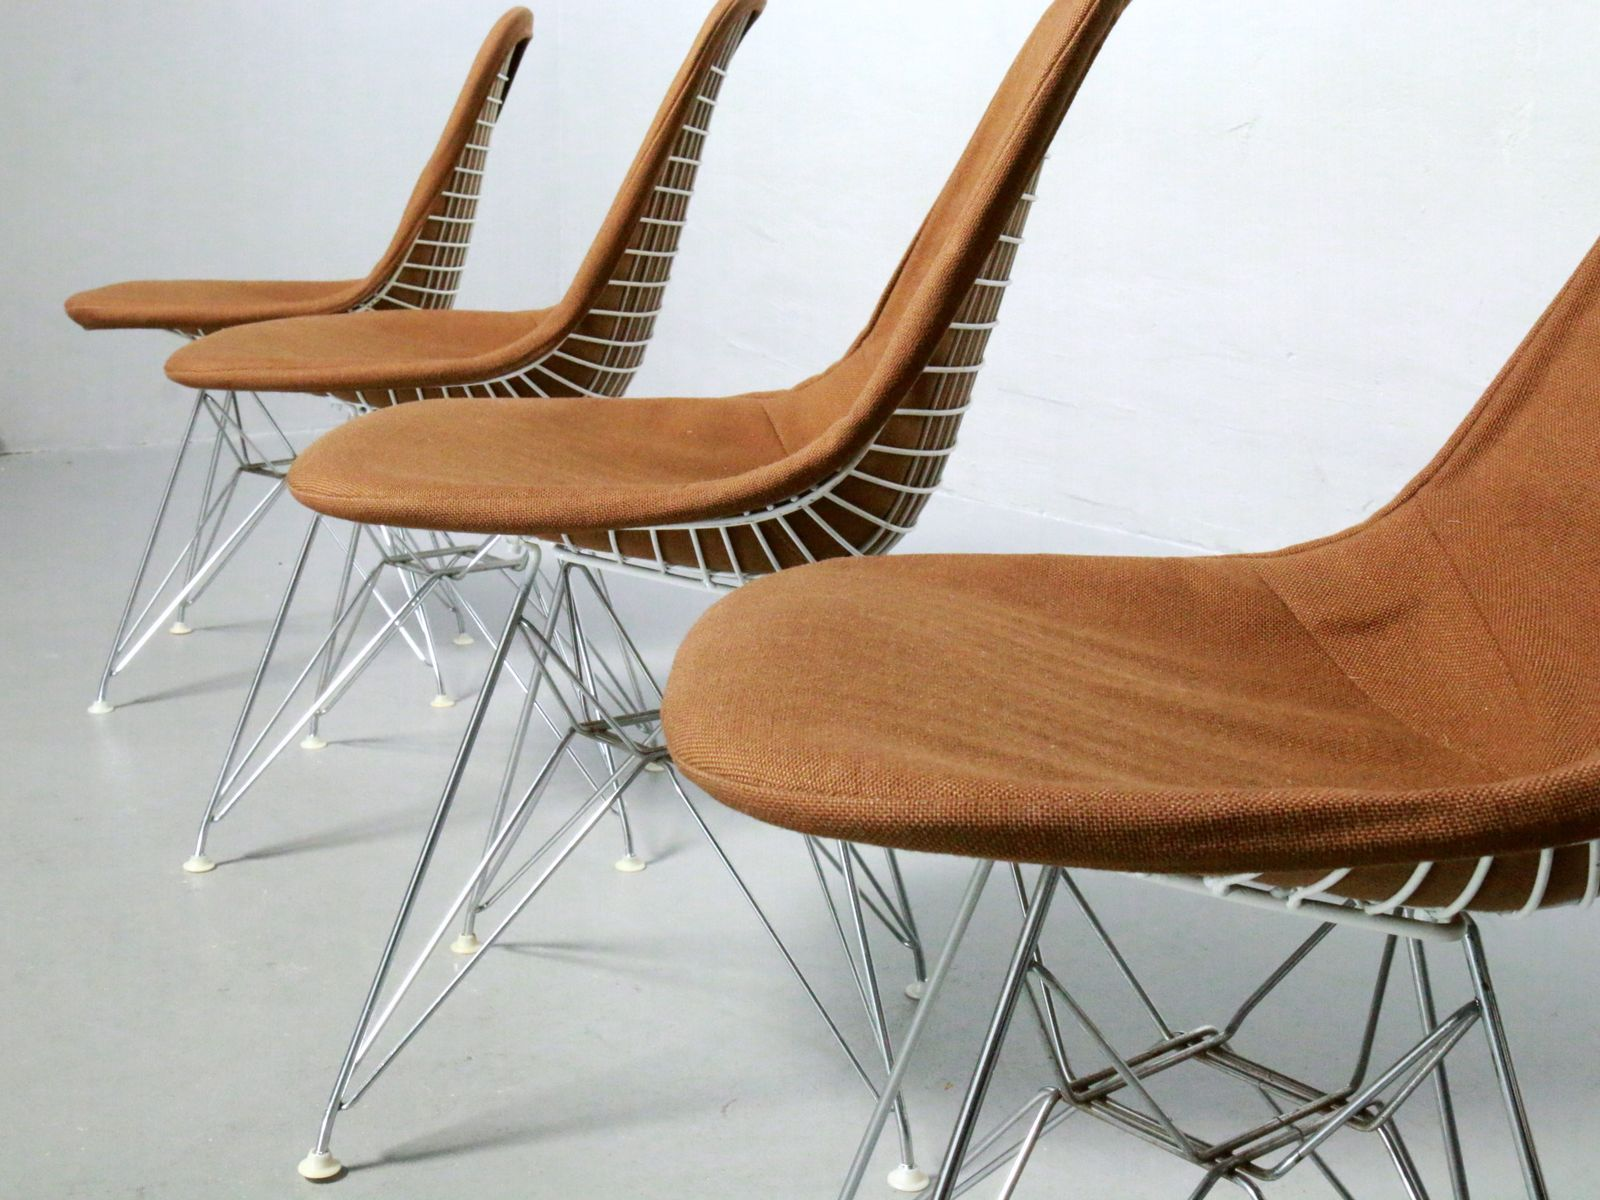 Vintage Wire Chairs by Charles and Ray Eames for Contura Set of 4